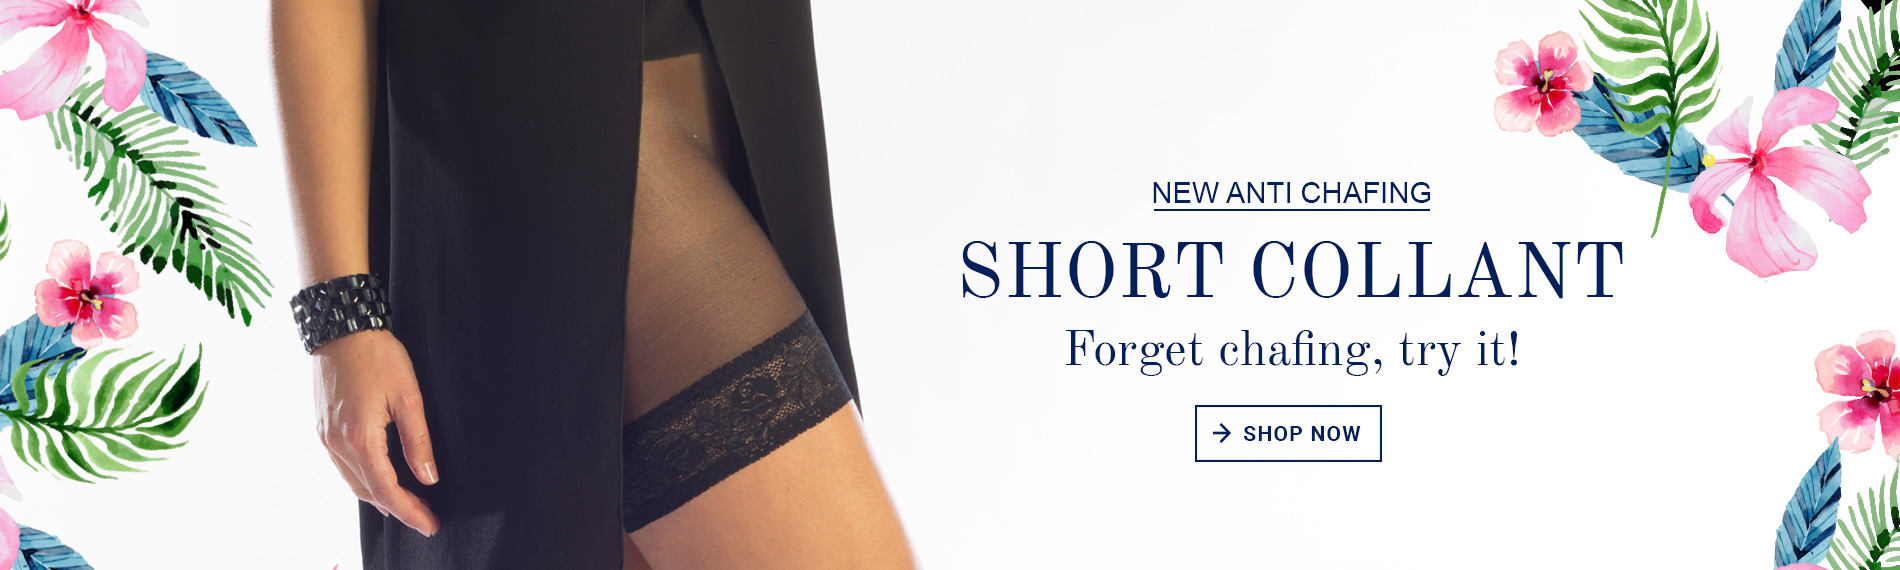 Short collant, forget chafing, try it!